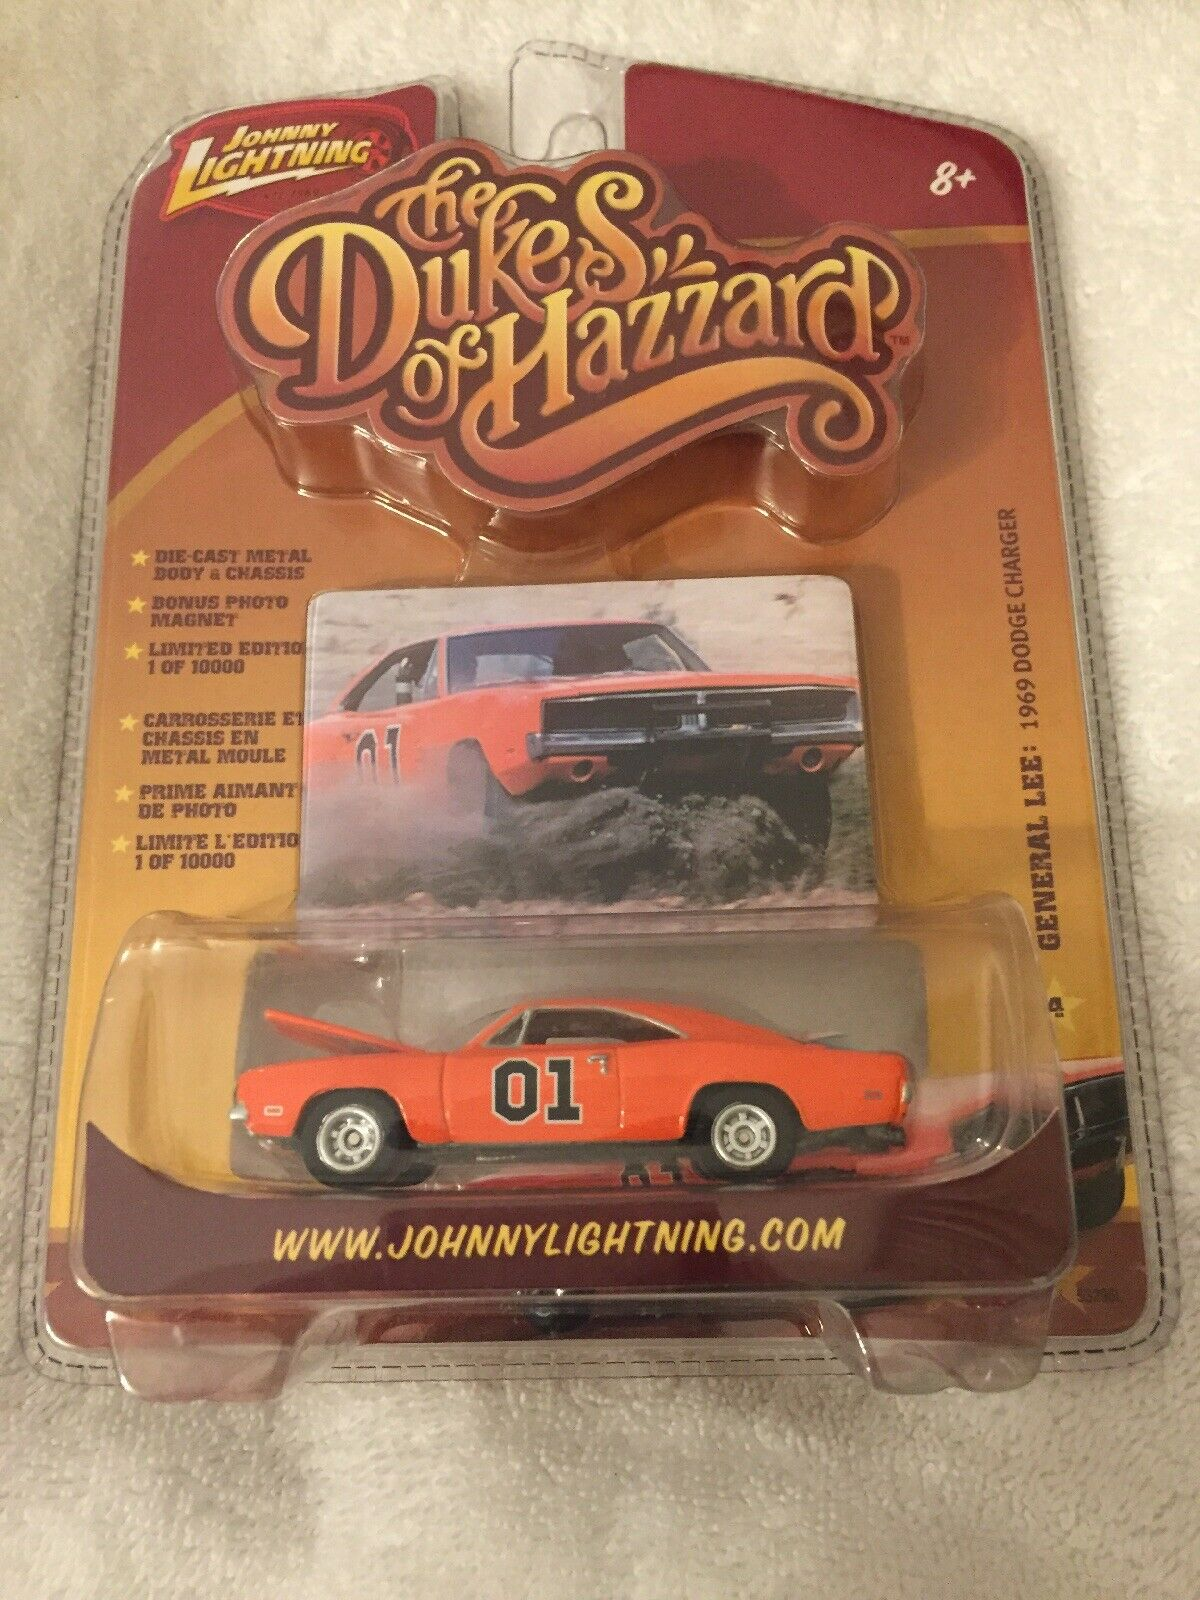 1969 Dodge Charger General Lee Johnny Lichtning Dukes of Hazzard General Lee 01